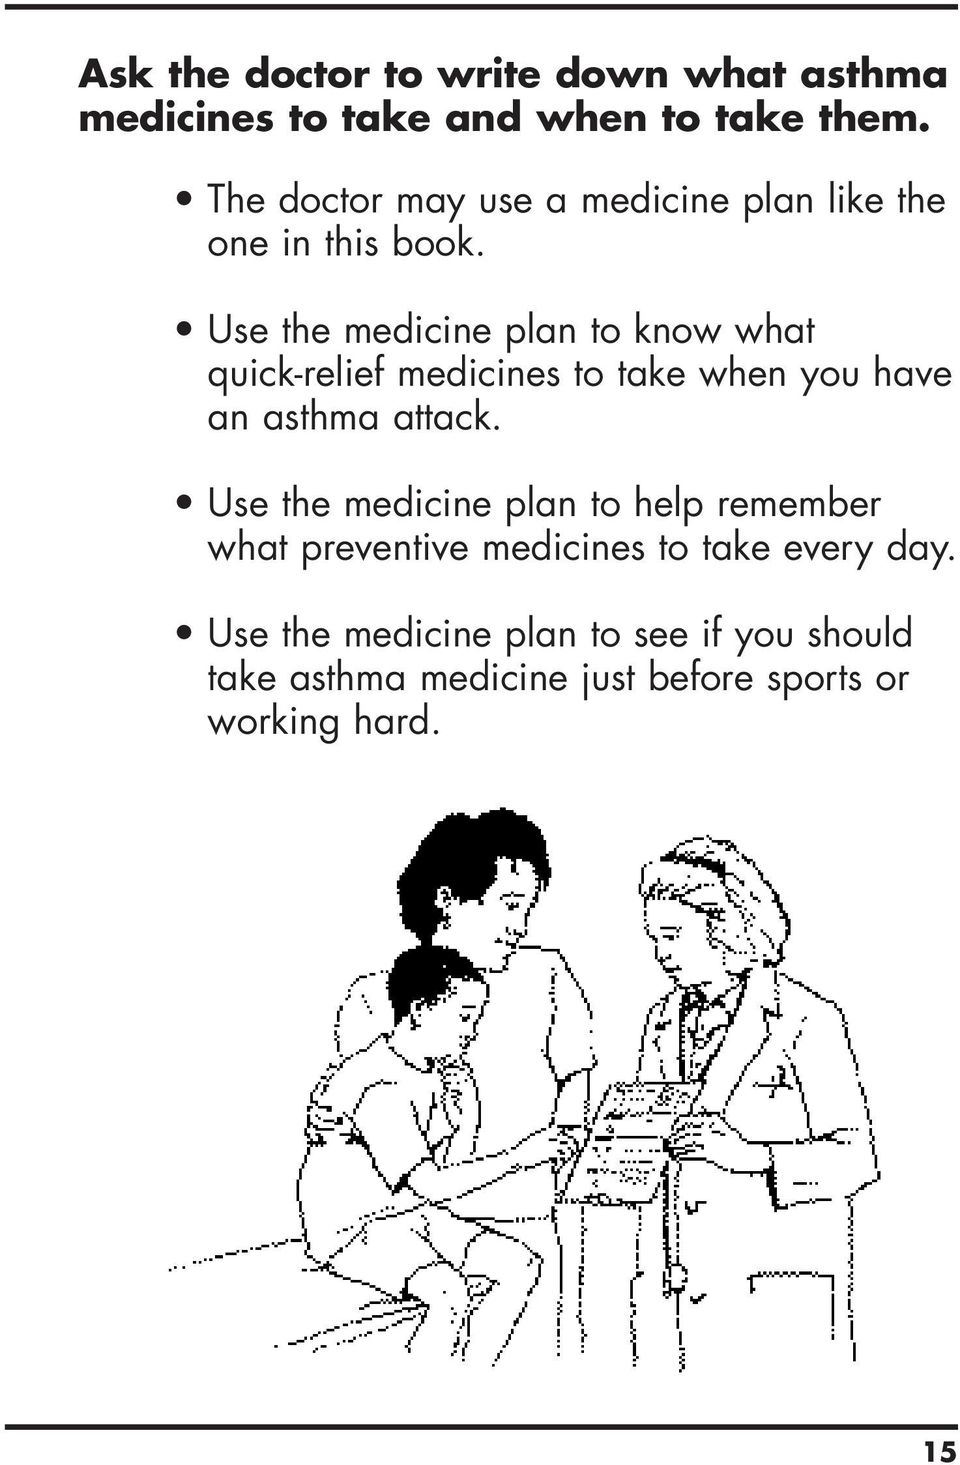 Use the medicine plan to know what quick-relief medicines to take when you have an asthma attack.